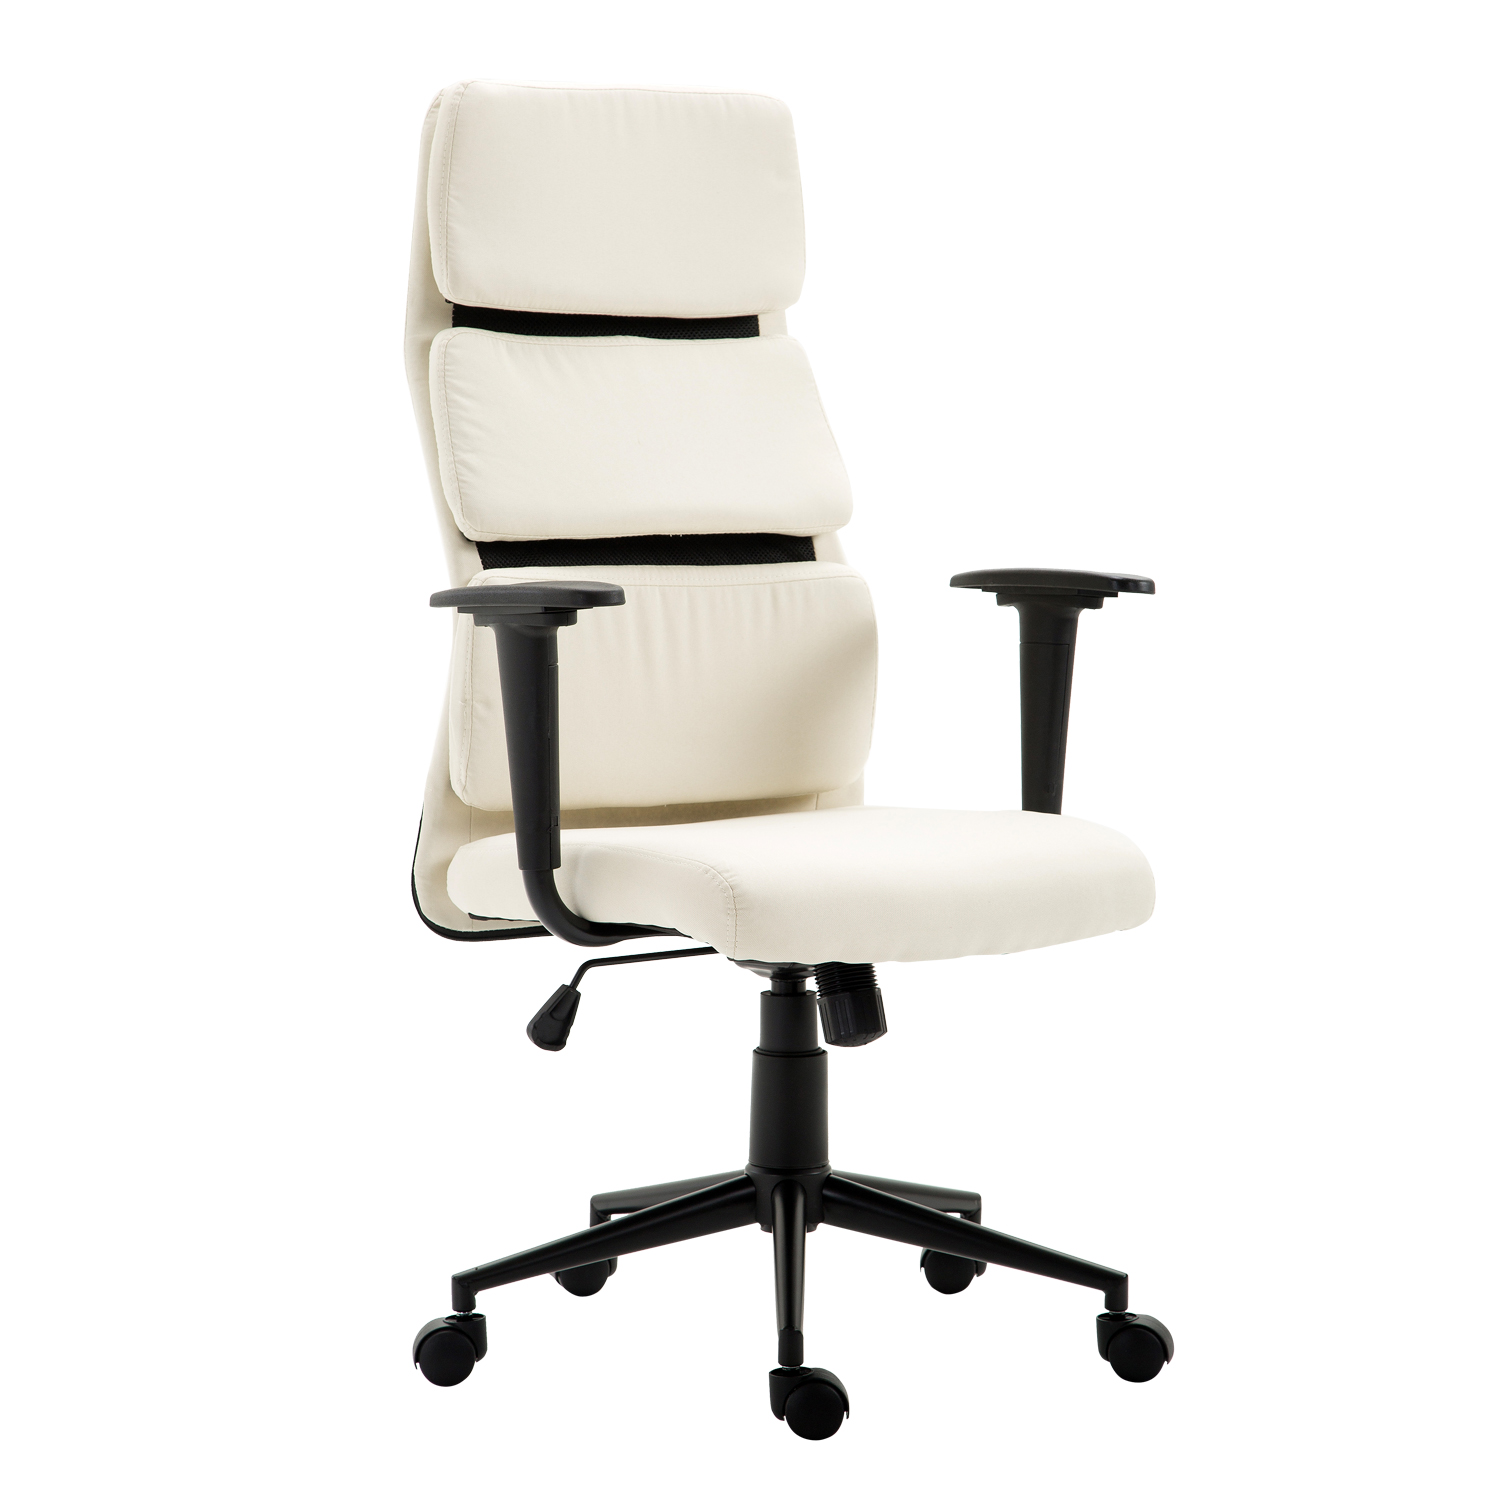 HOMCOM Lumbar Support Desktop Computer Chair With Arms   Cream White